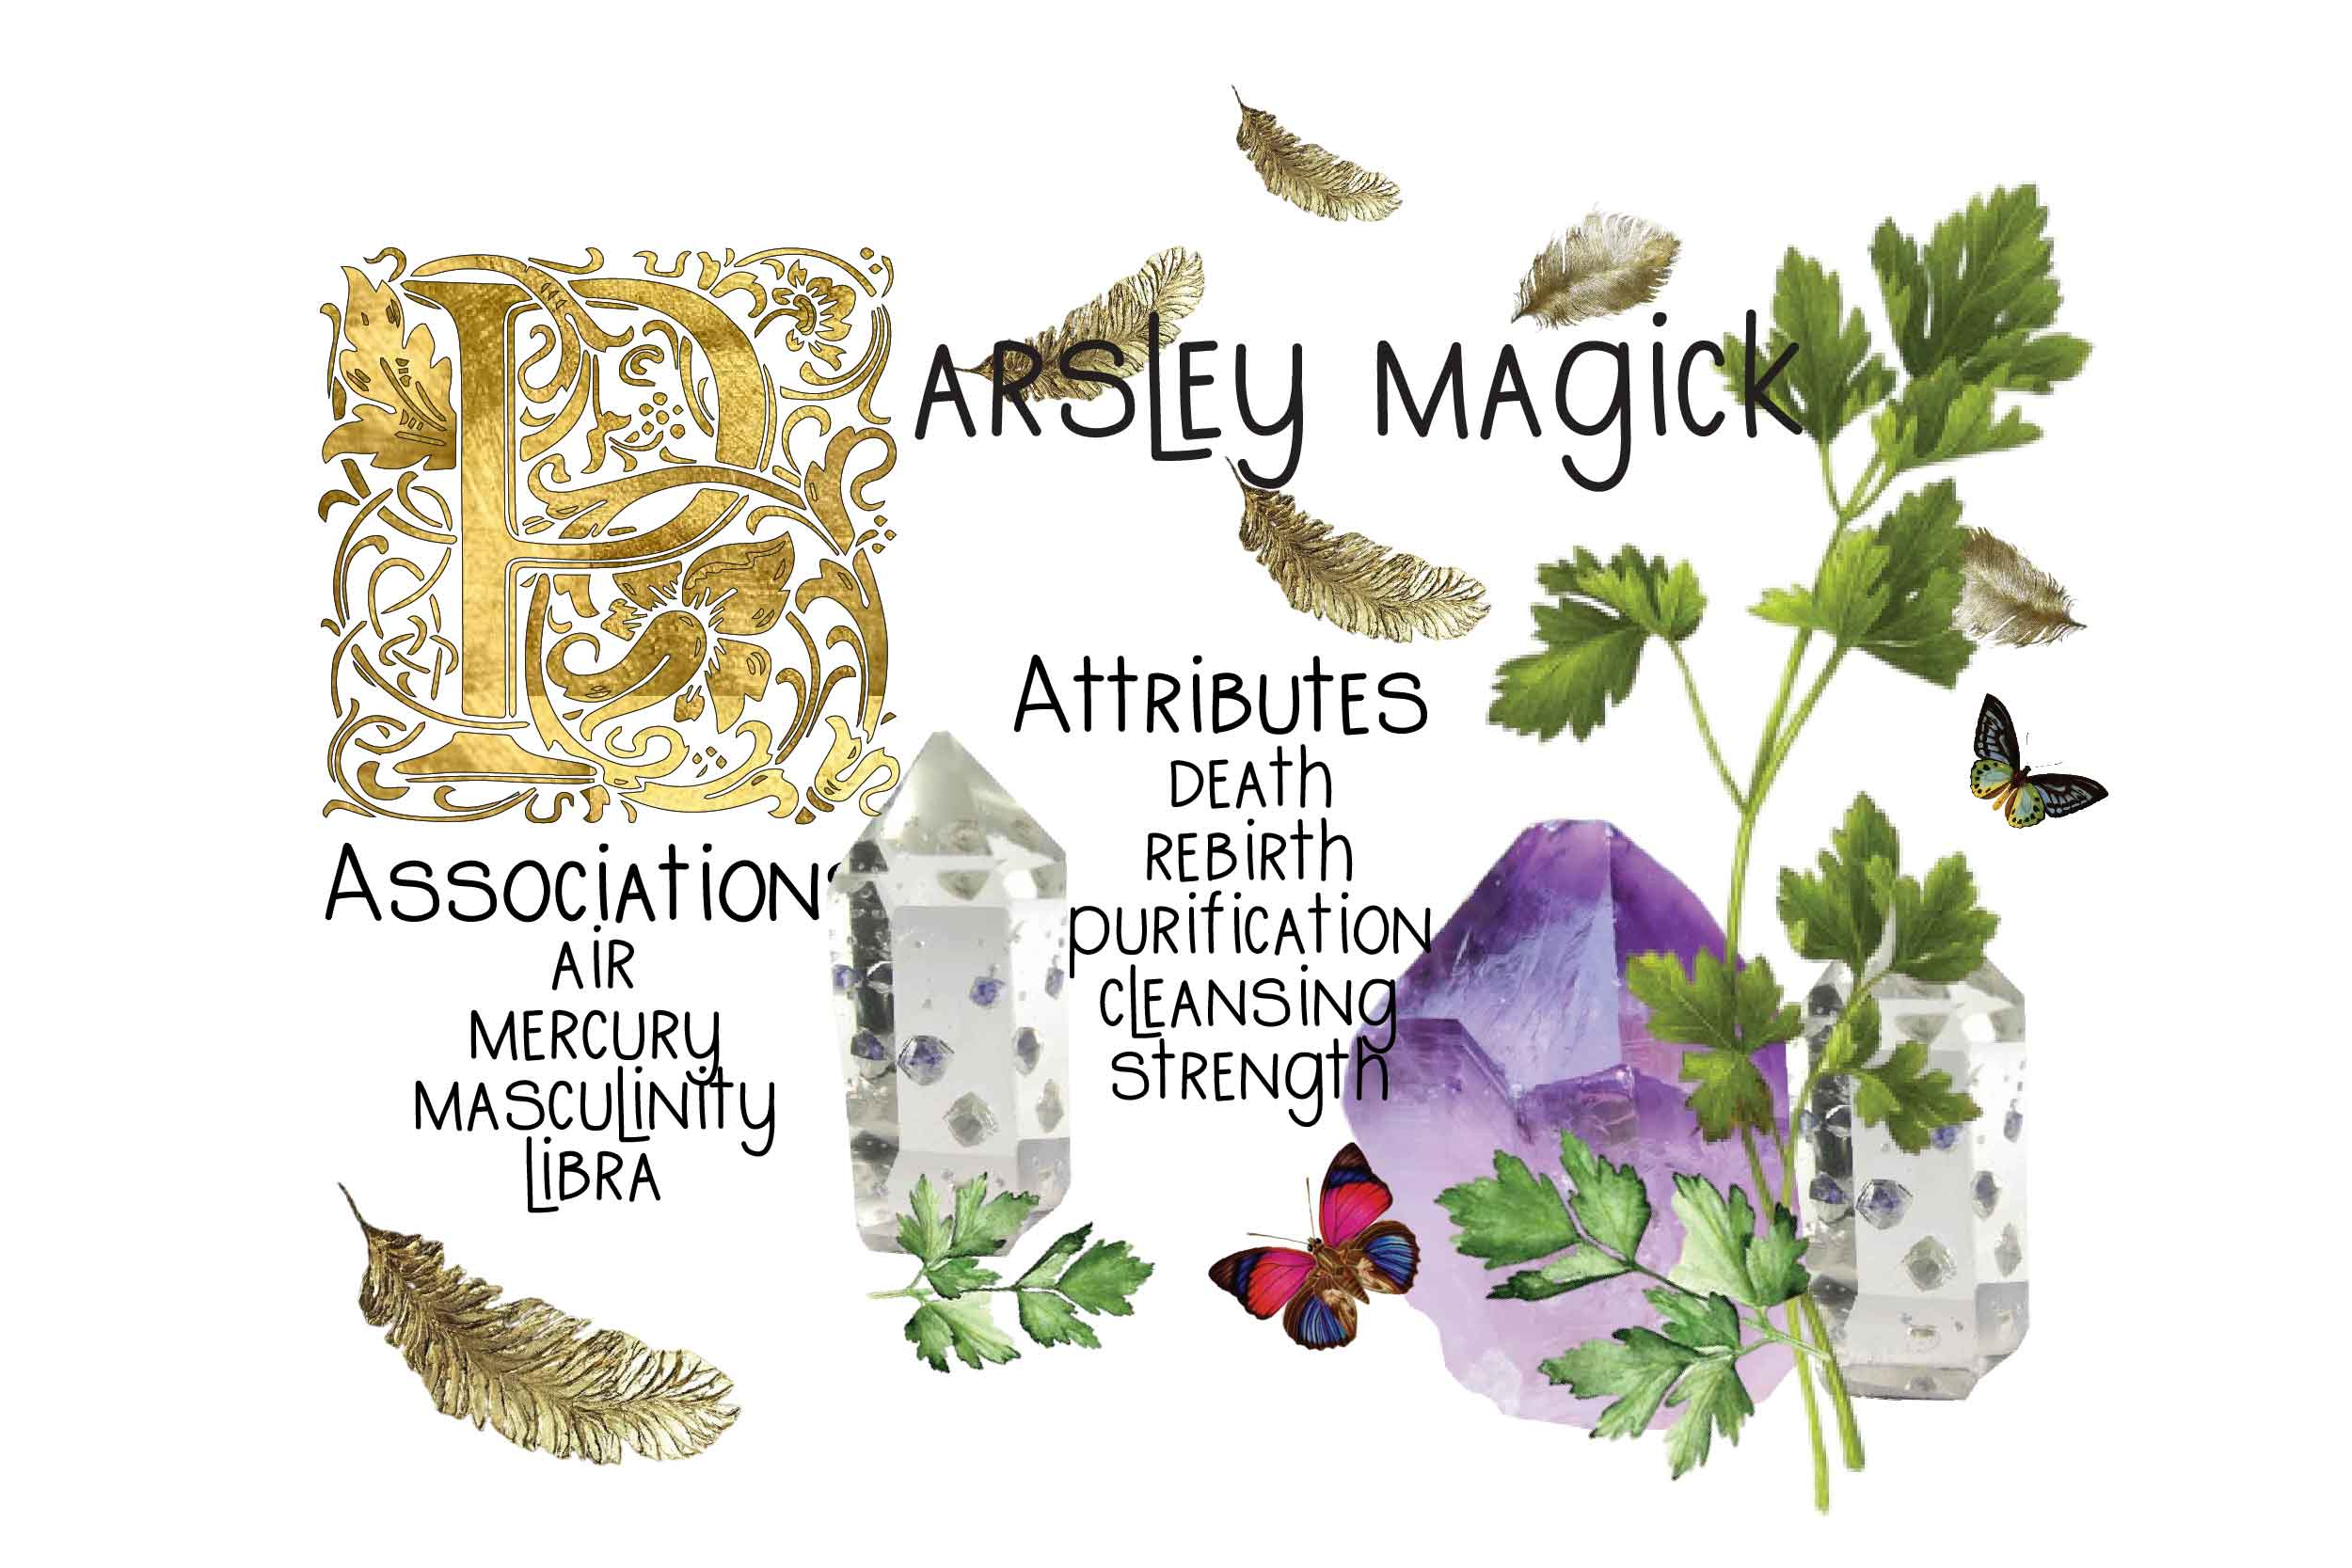 PARSLEY magick